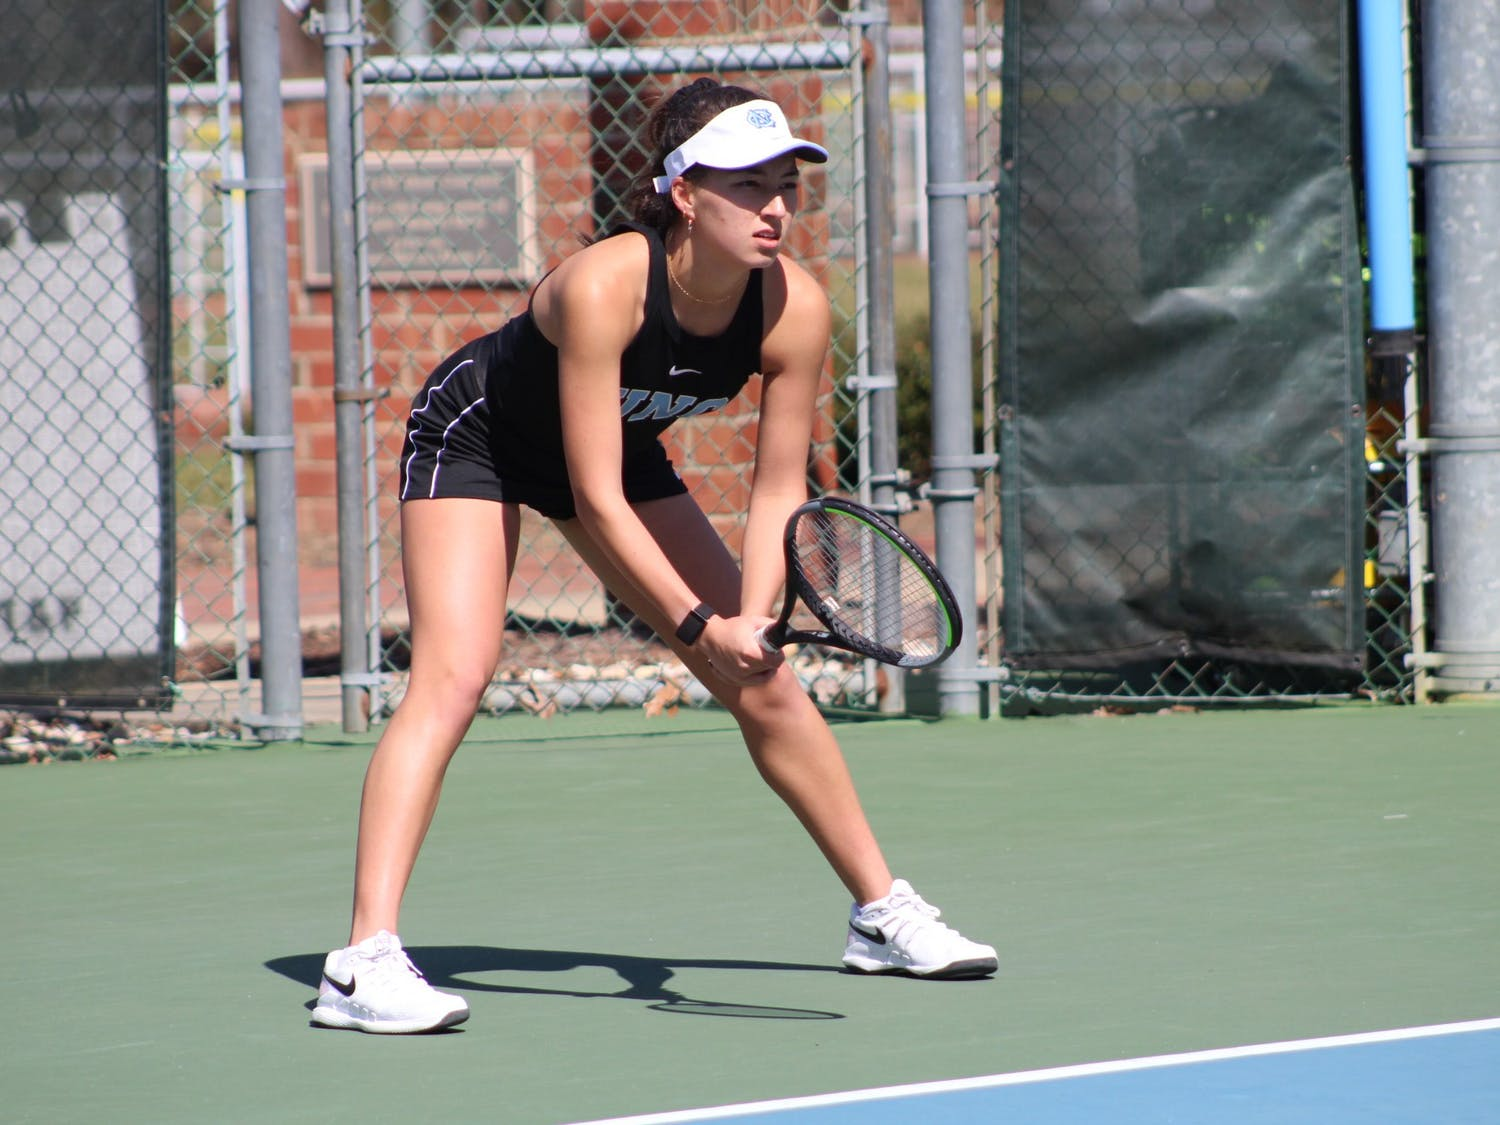 Reilly Tran prepares to return a serve during her doubles victory over Maya Tahan and Florencia Urrutia of the University of Miami on March 6, 2021.